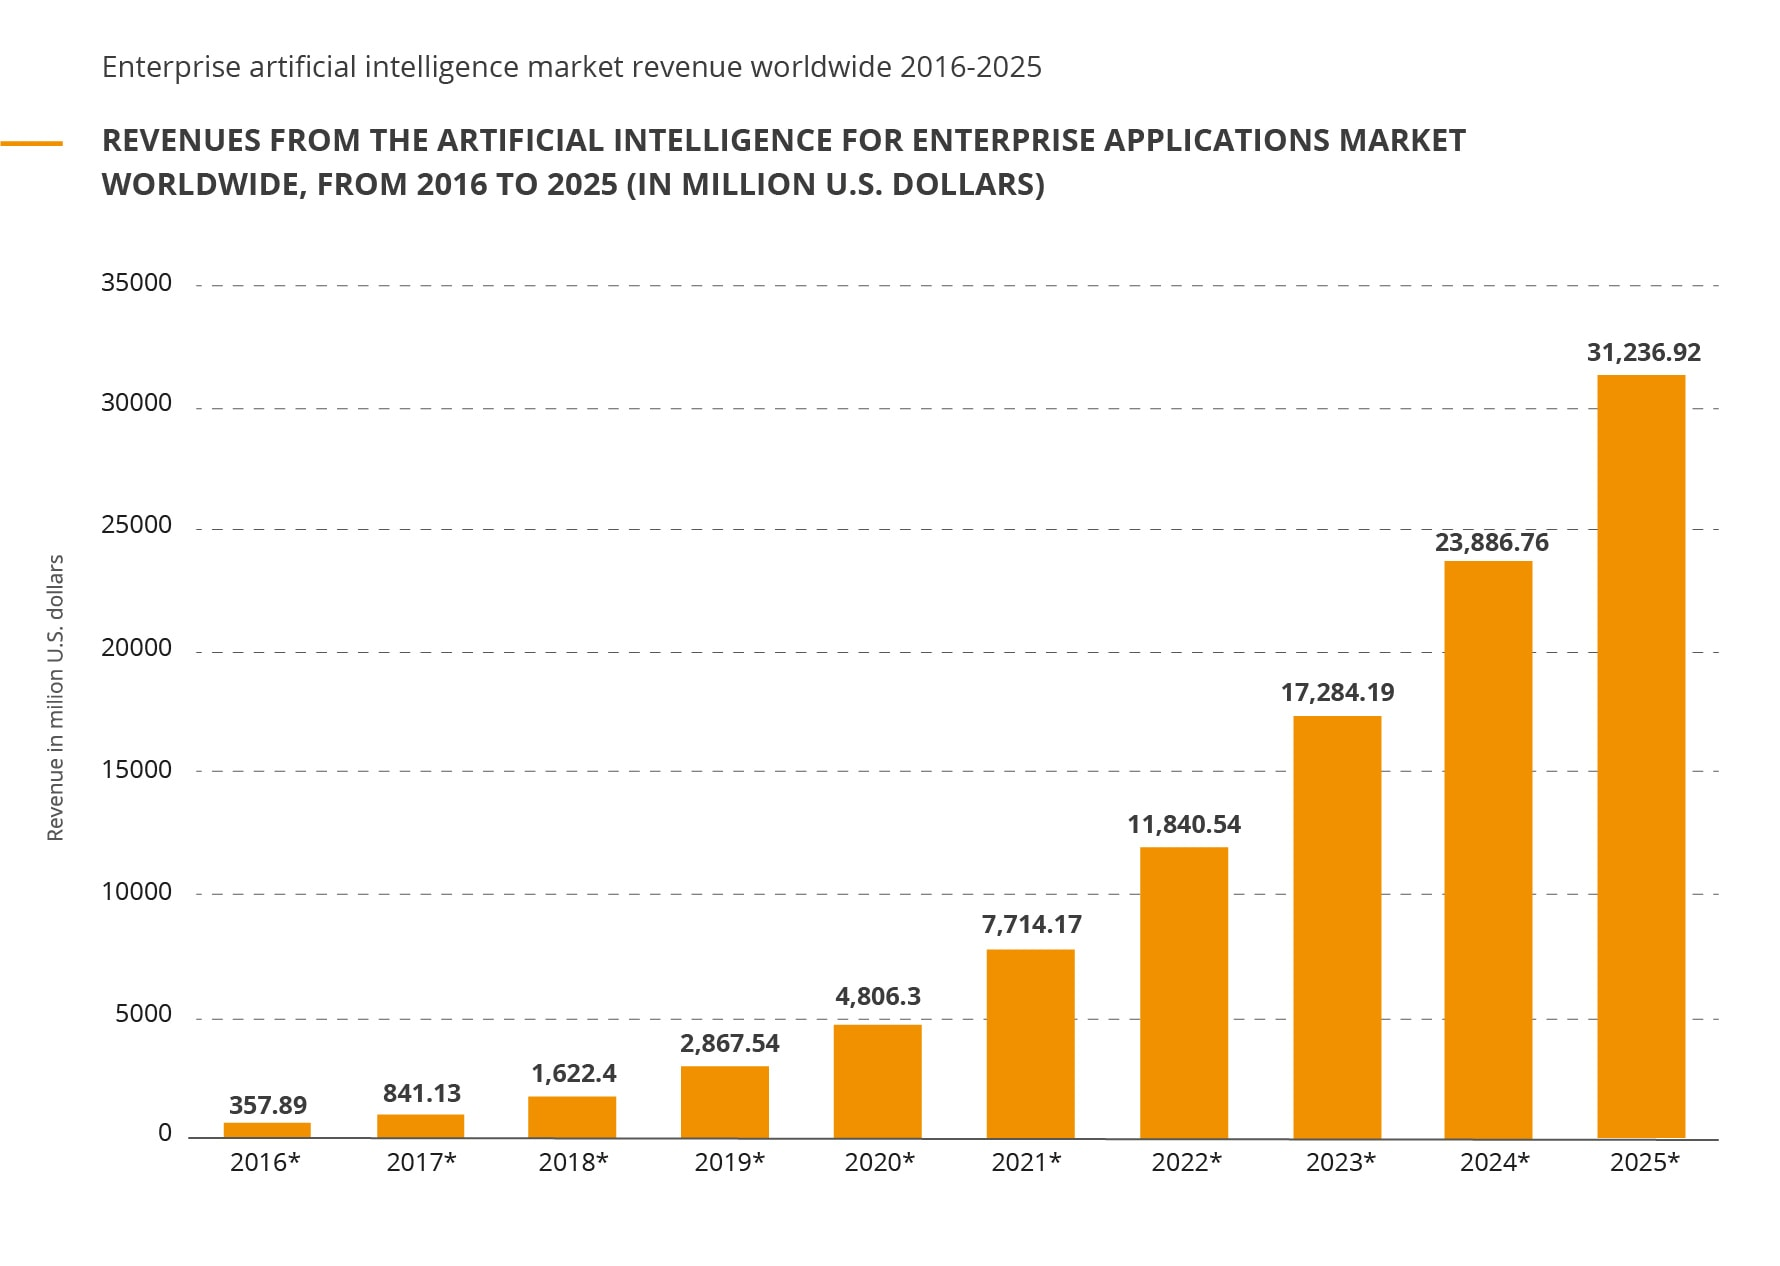 Revenues from the A.I. for enterprise applications market worldwide